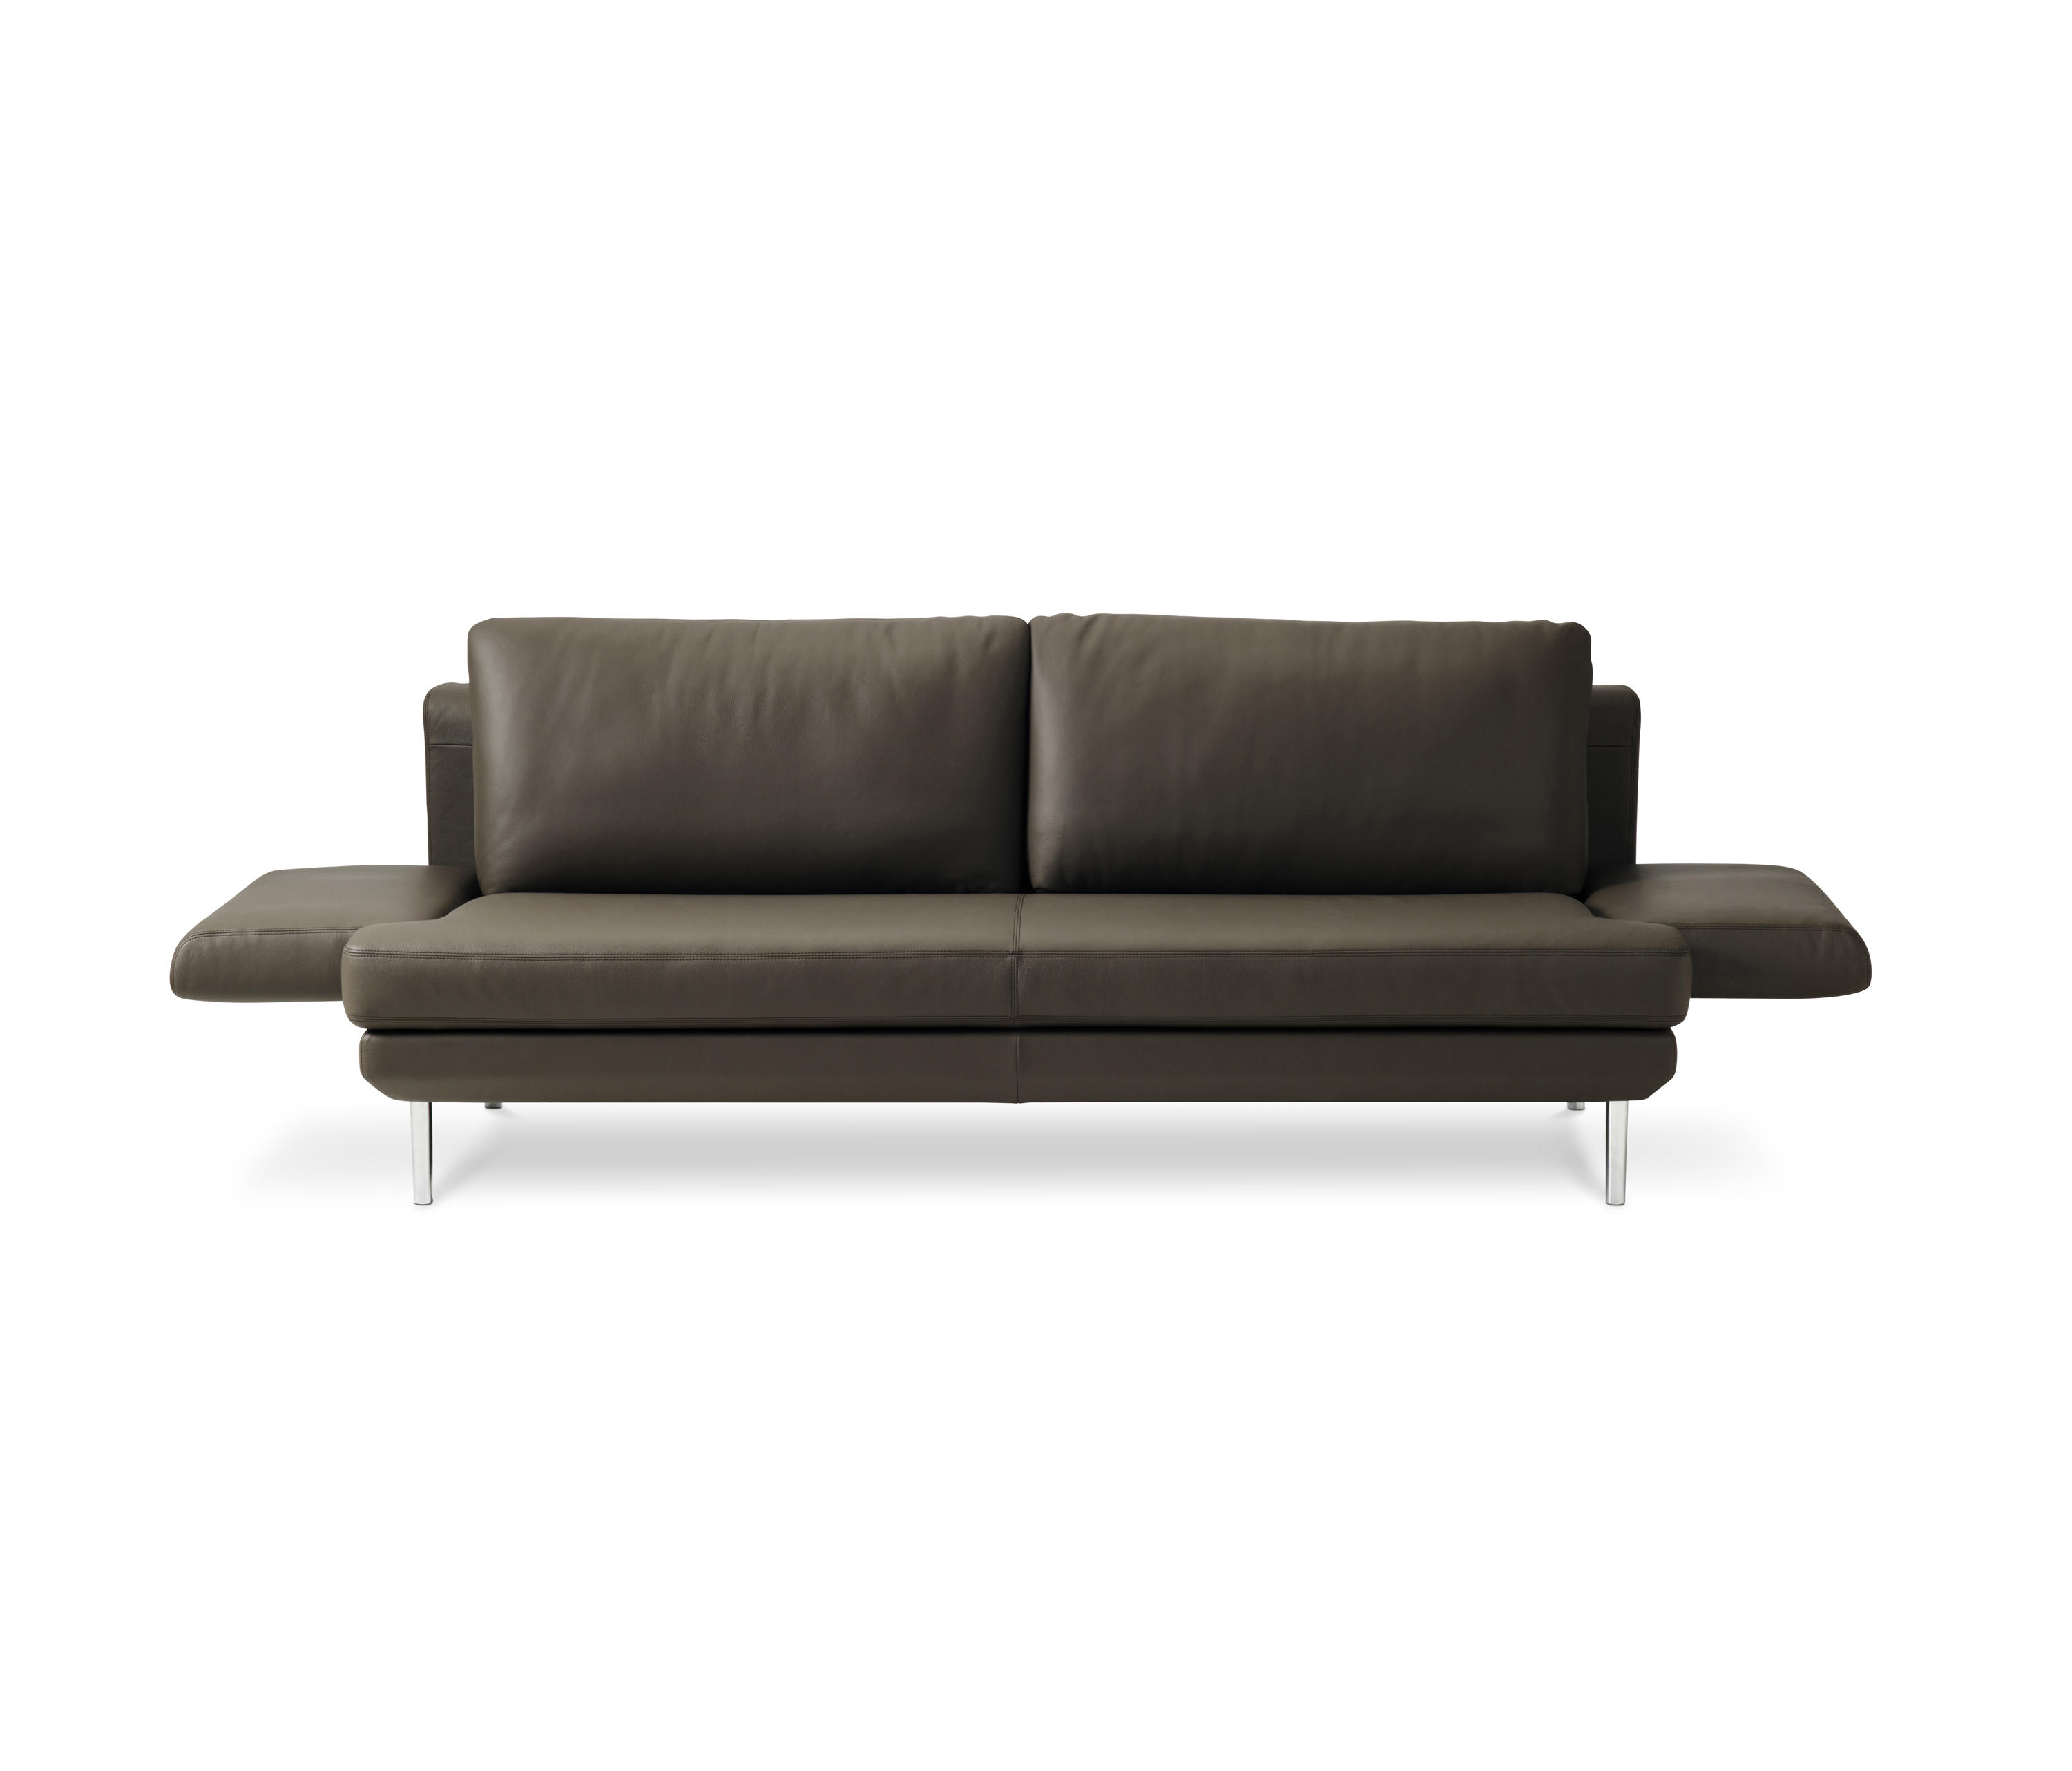 Smart Ecksofa Anna 1191 Liv Sofas From Intertime Architonic